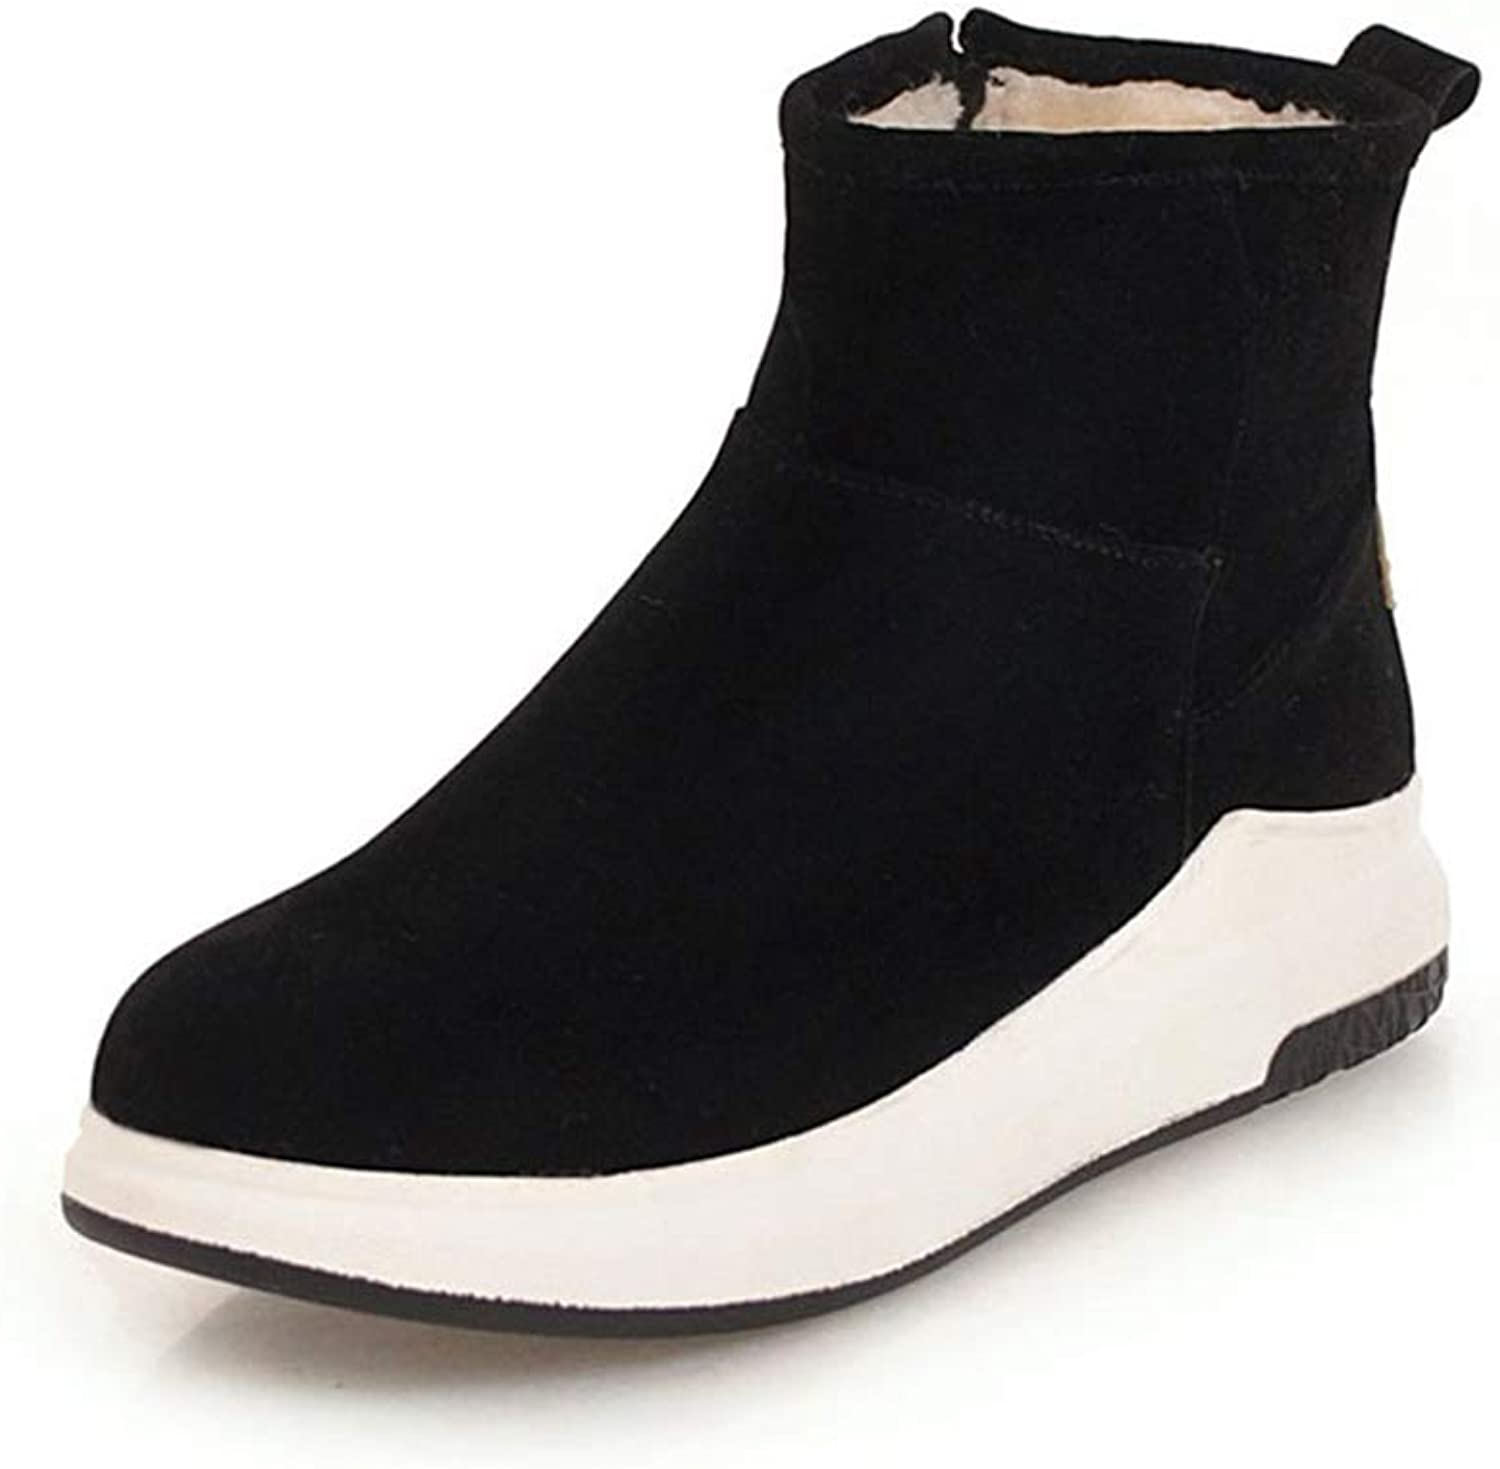 GIY Women's Round Toe Ankle Boots Breathable Winter Warm Cotton Fur Slip On Casual Flat Low Heel Platform Snow Boots